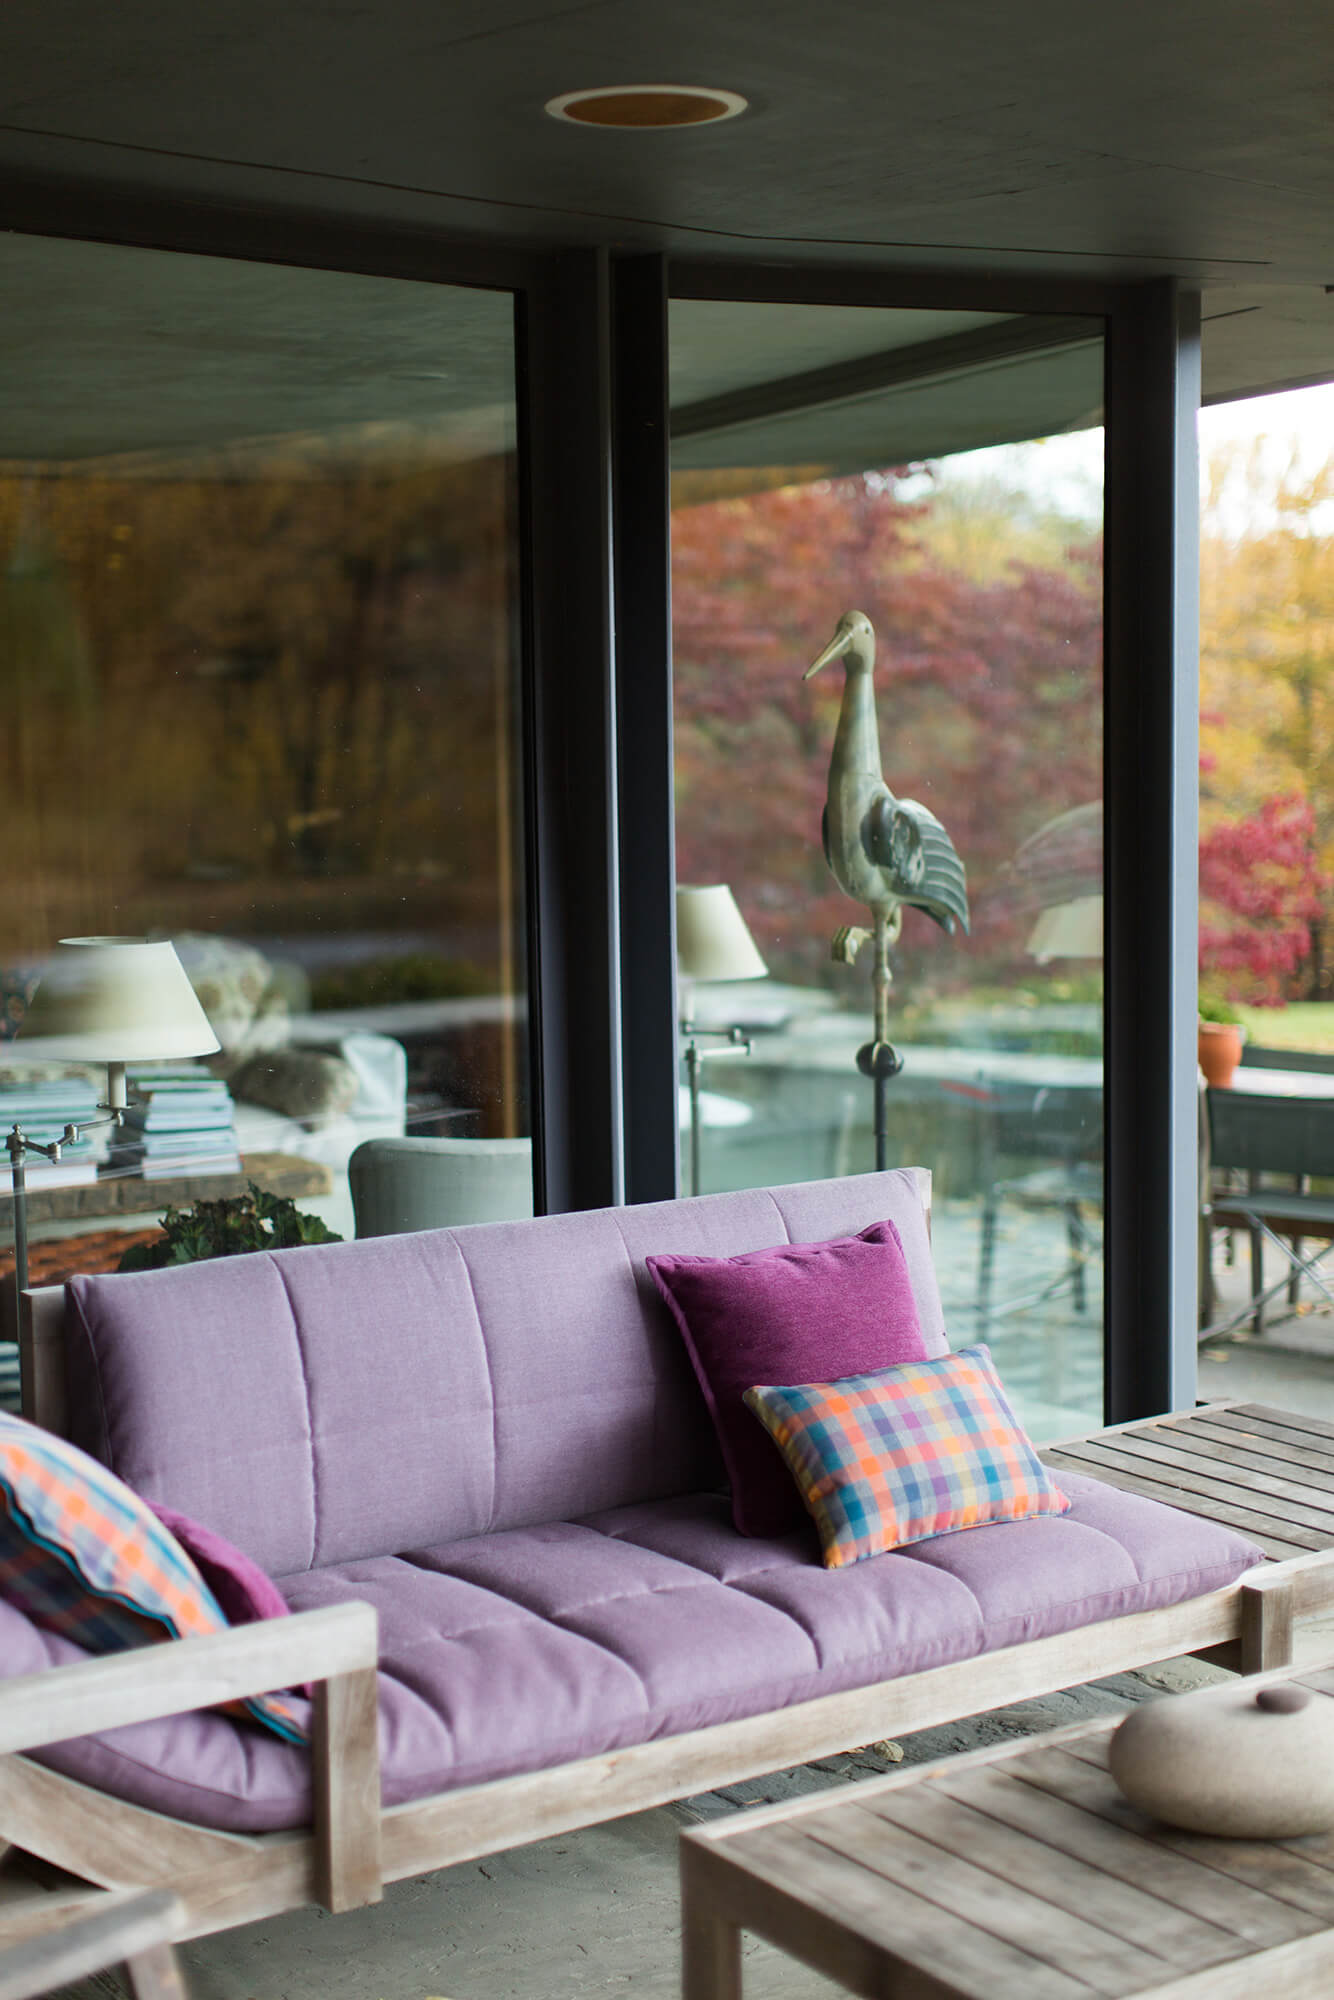 Patio With Sofa Featuring Cushions Made Using Purple Sunbrella Fabric And Bold Patterned Throw Pillows Upholstered Chair